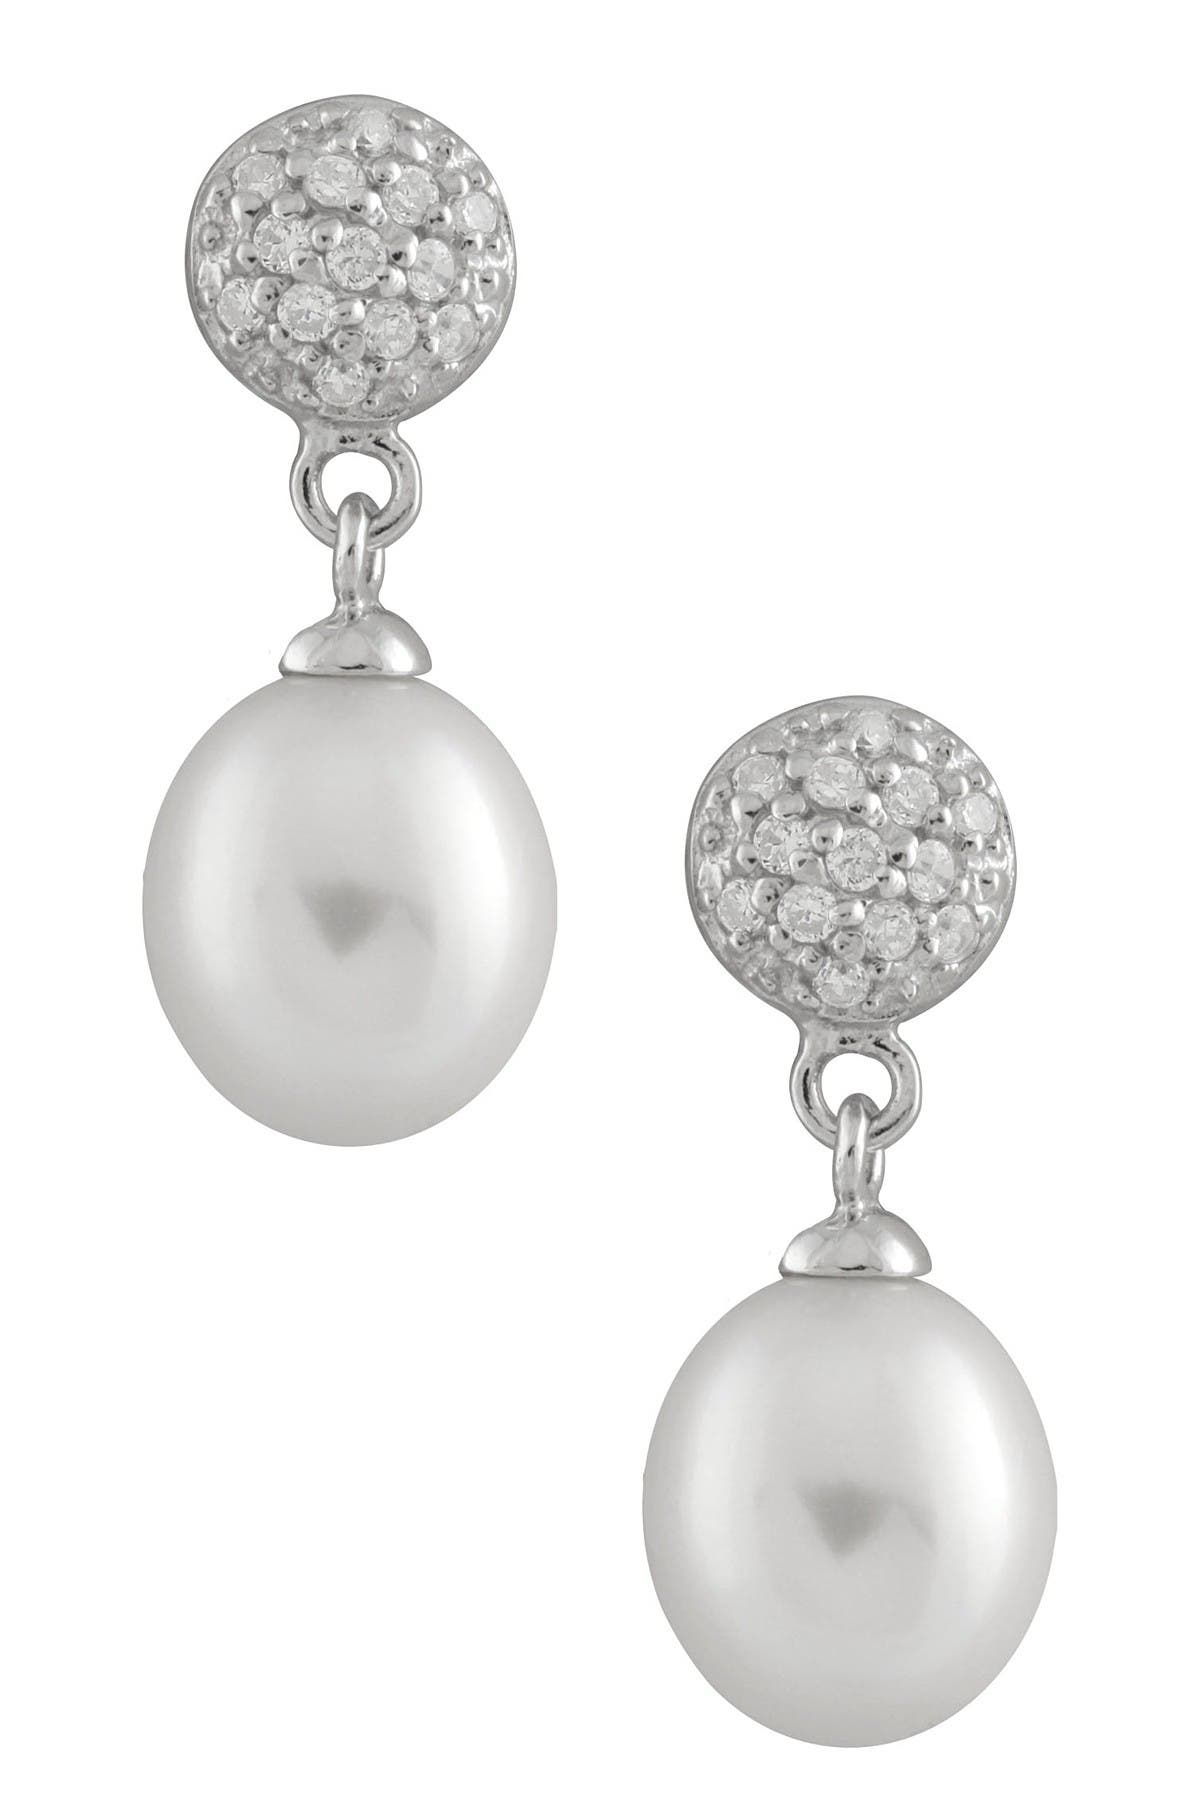 Image of Splendid Pearls 8-8.5mm Freshwater Pearl Pave CZ Drop Earrings